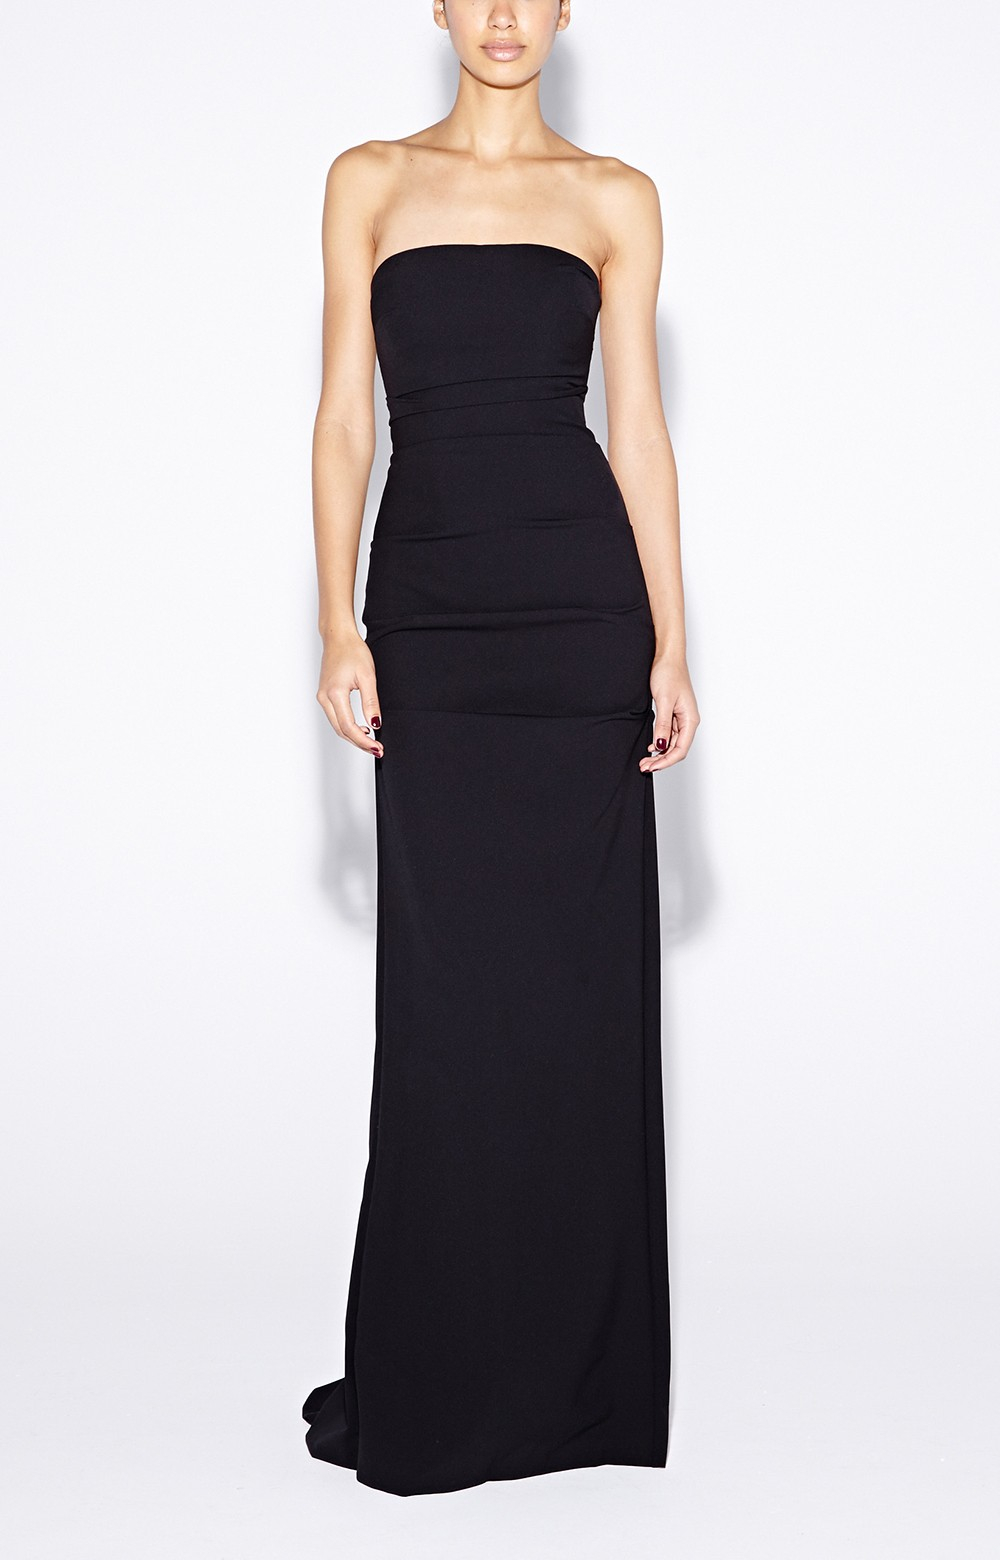 Lyst - Nicole Miller Felicity Strapless Crepe Gown in Black